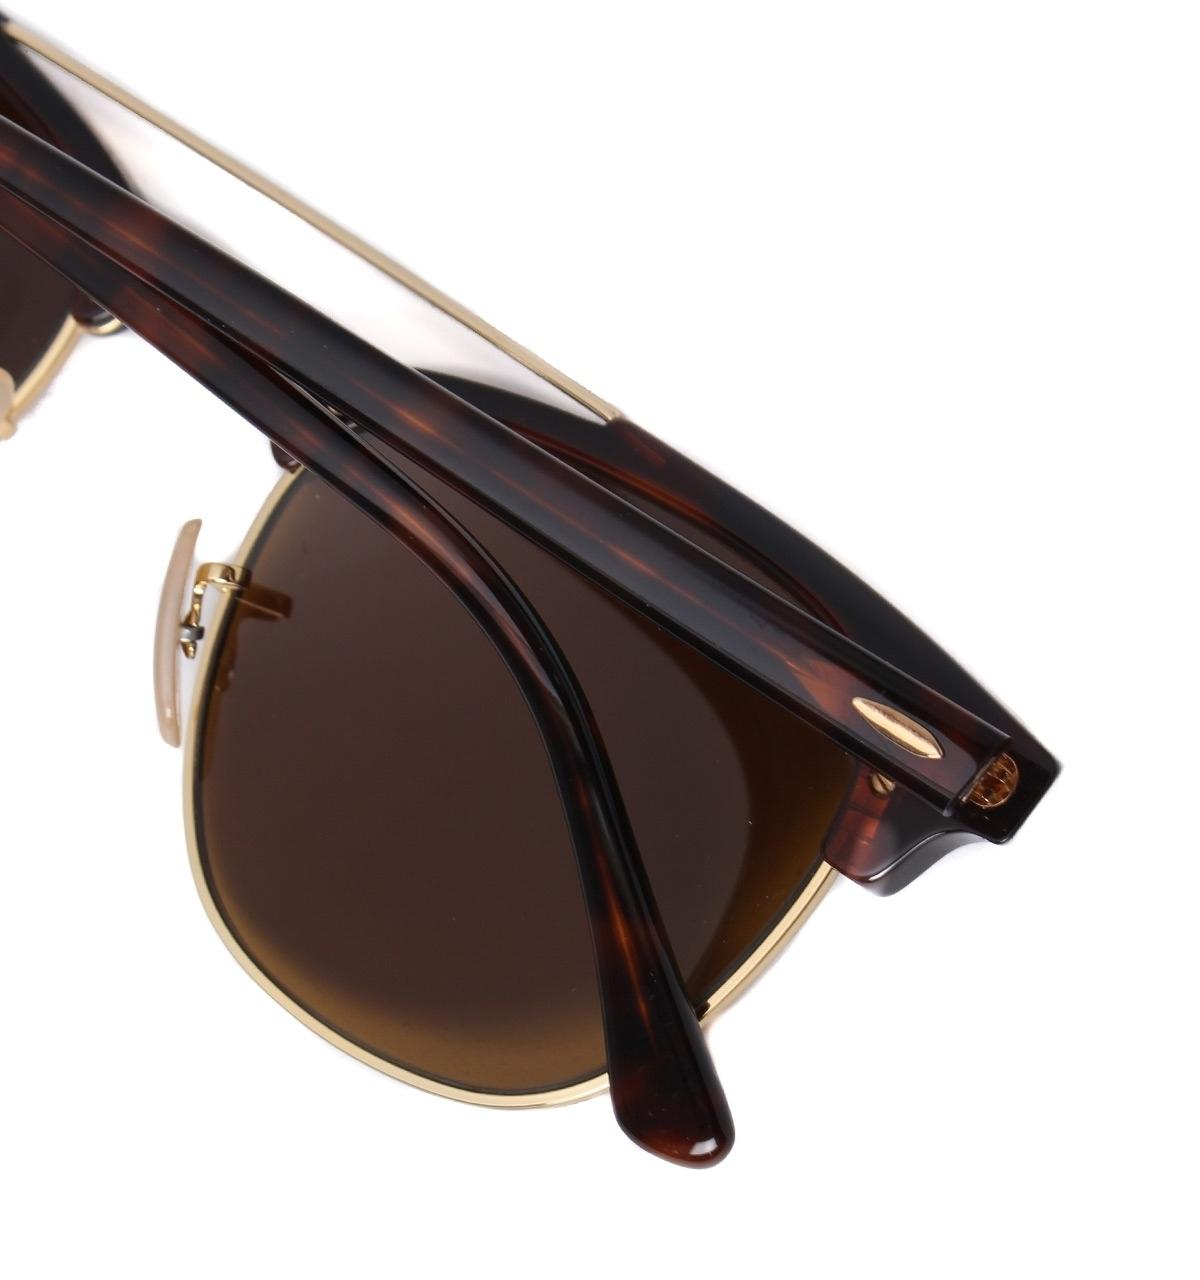 a9b1c90cca1fd Ray Ban 5169 0 0 0 138 « One More Soul